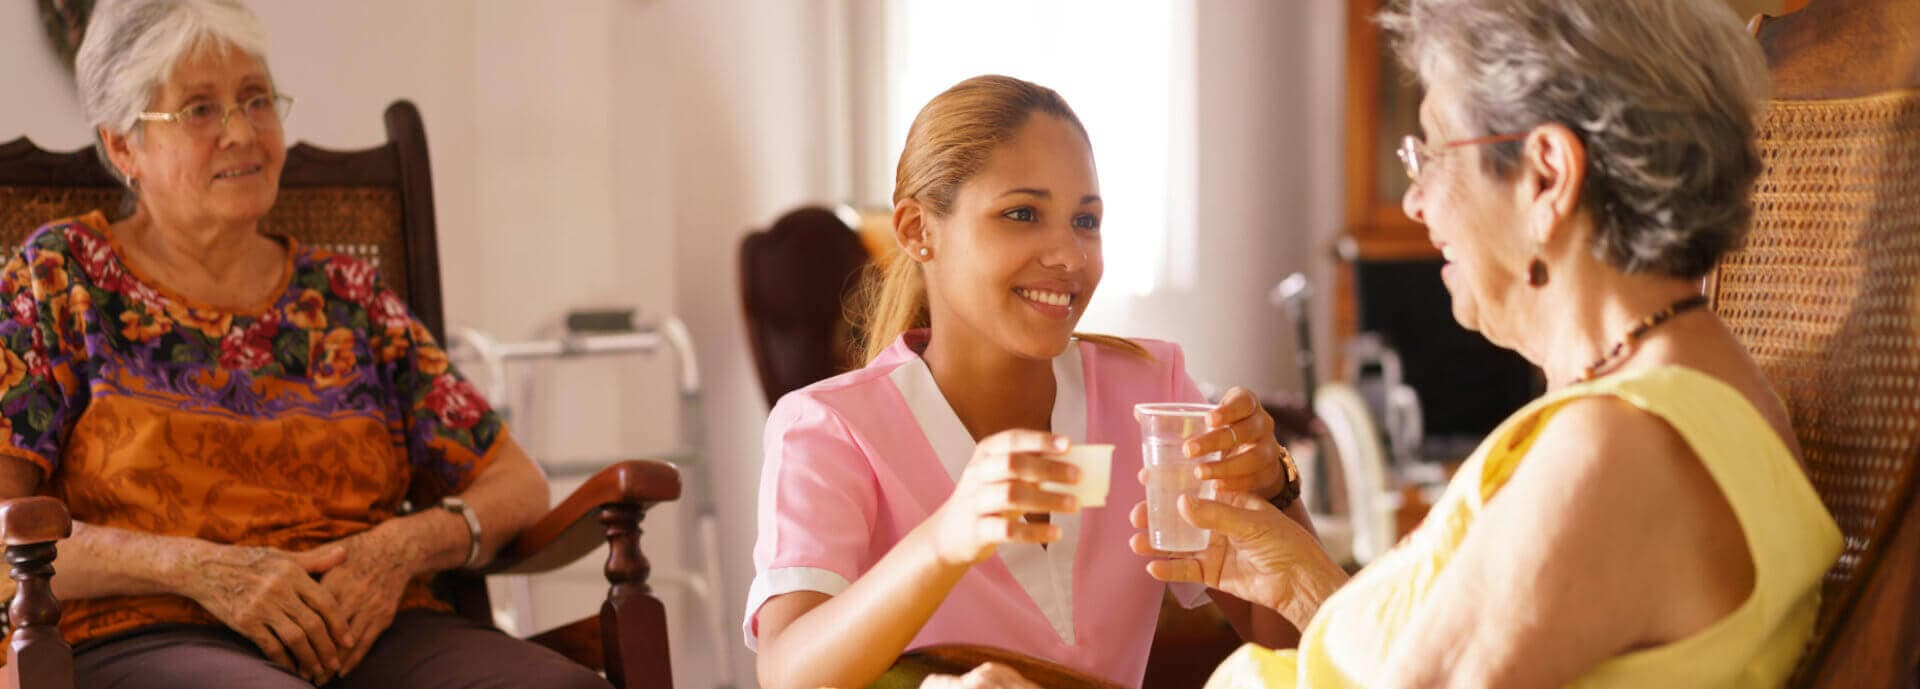 caregiver giving her senior patient some water